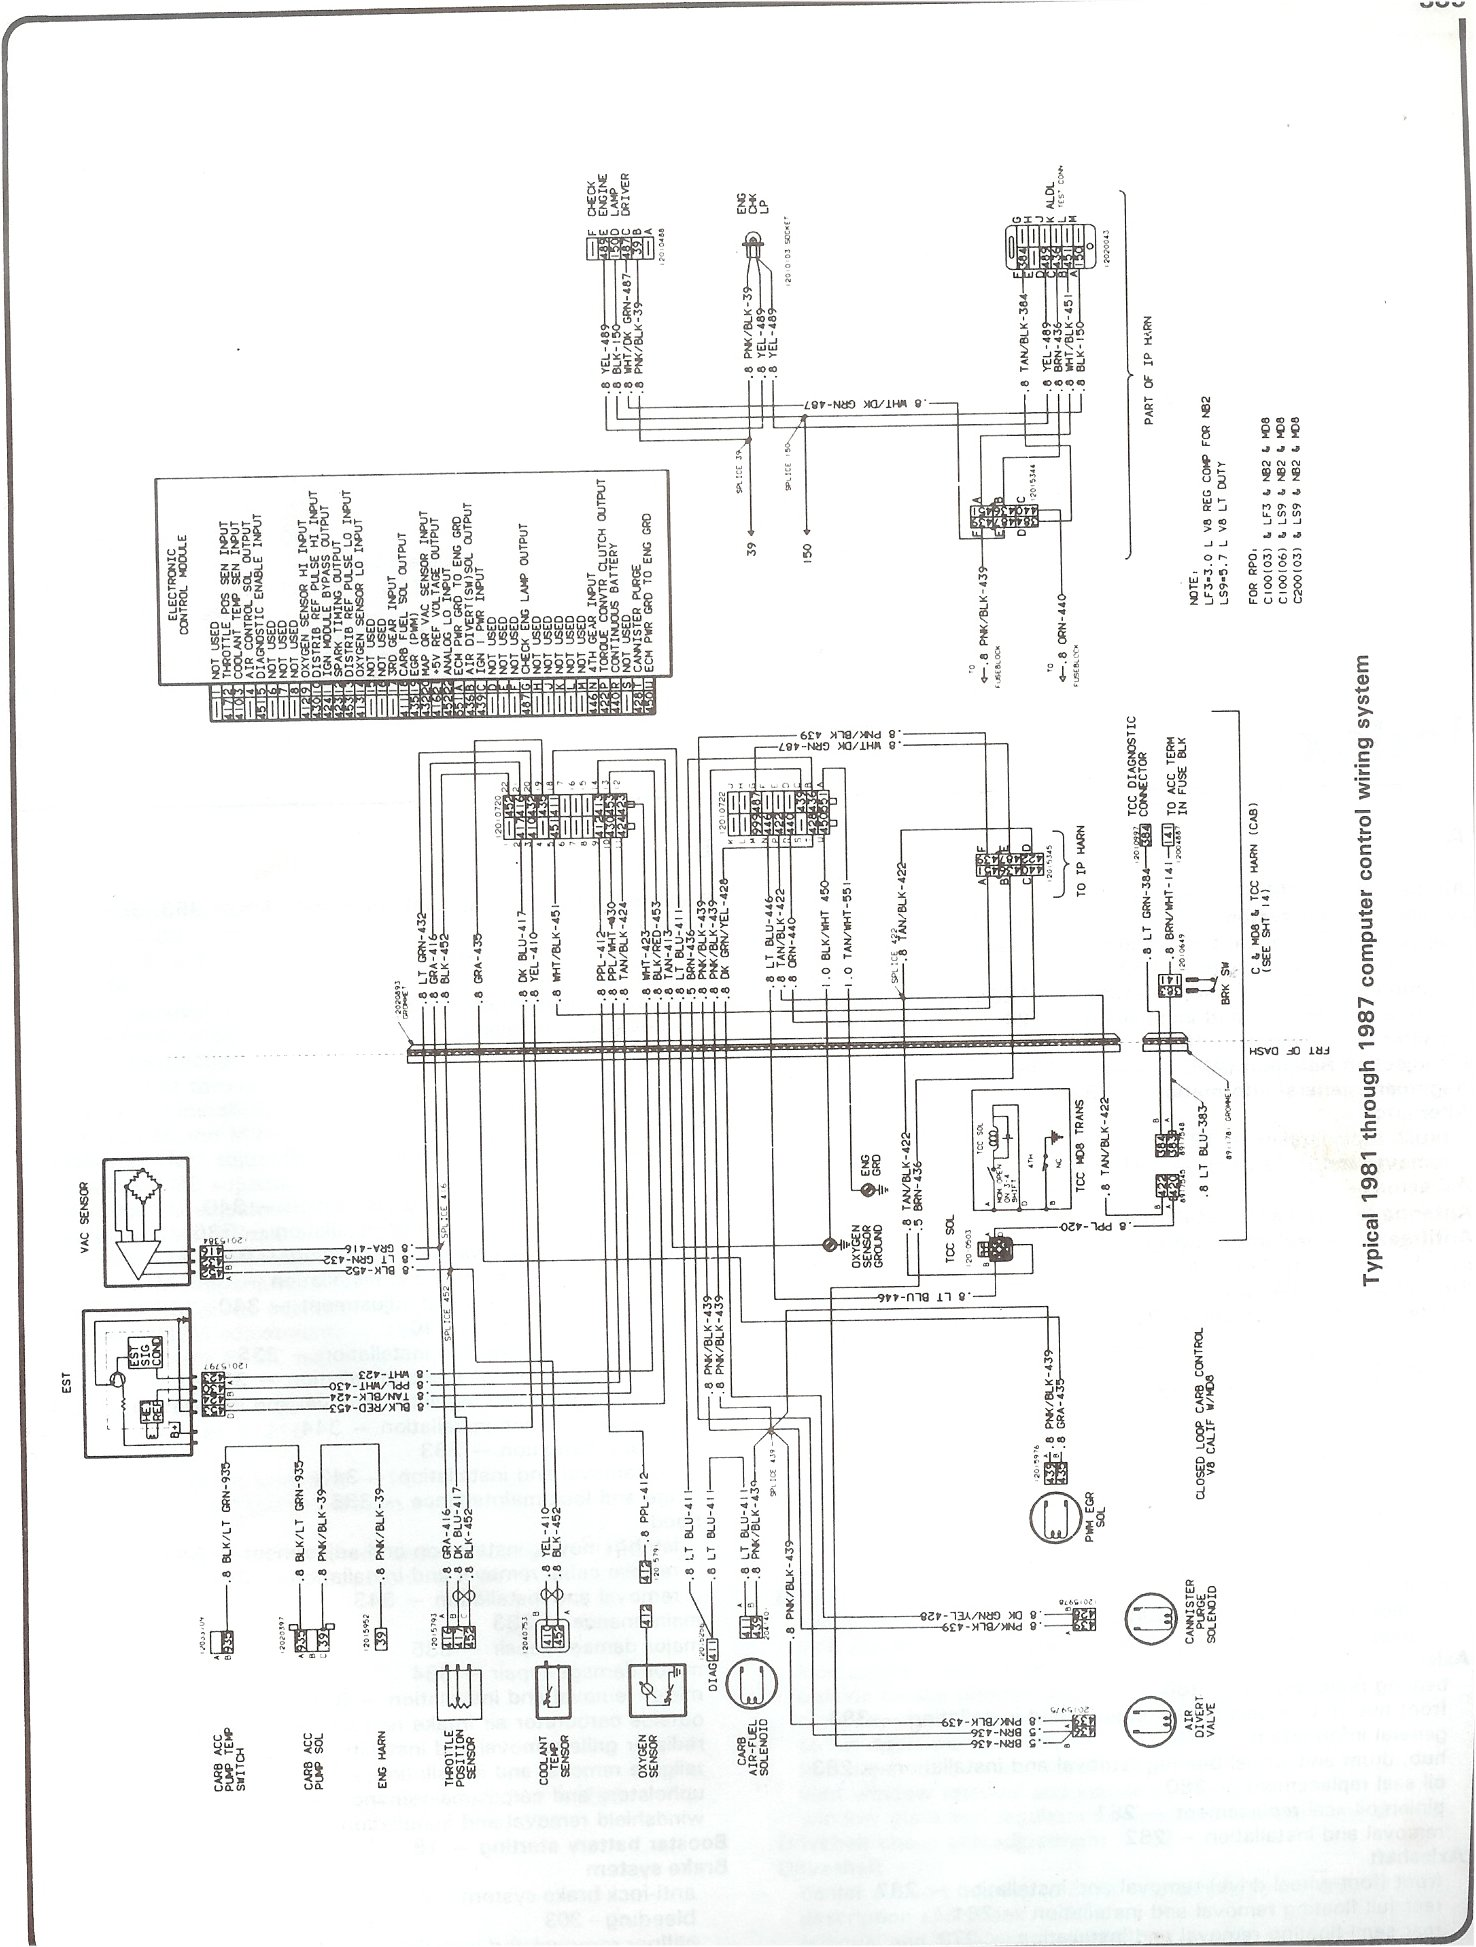 81 87_computer_control_wiring complete 73 87 wiring diagrams 1985 chevy truck power window wire diagram at bakdesigns.co